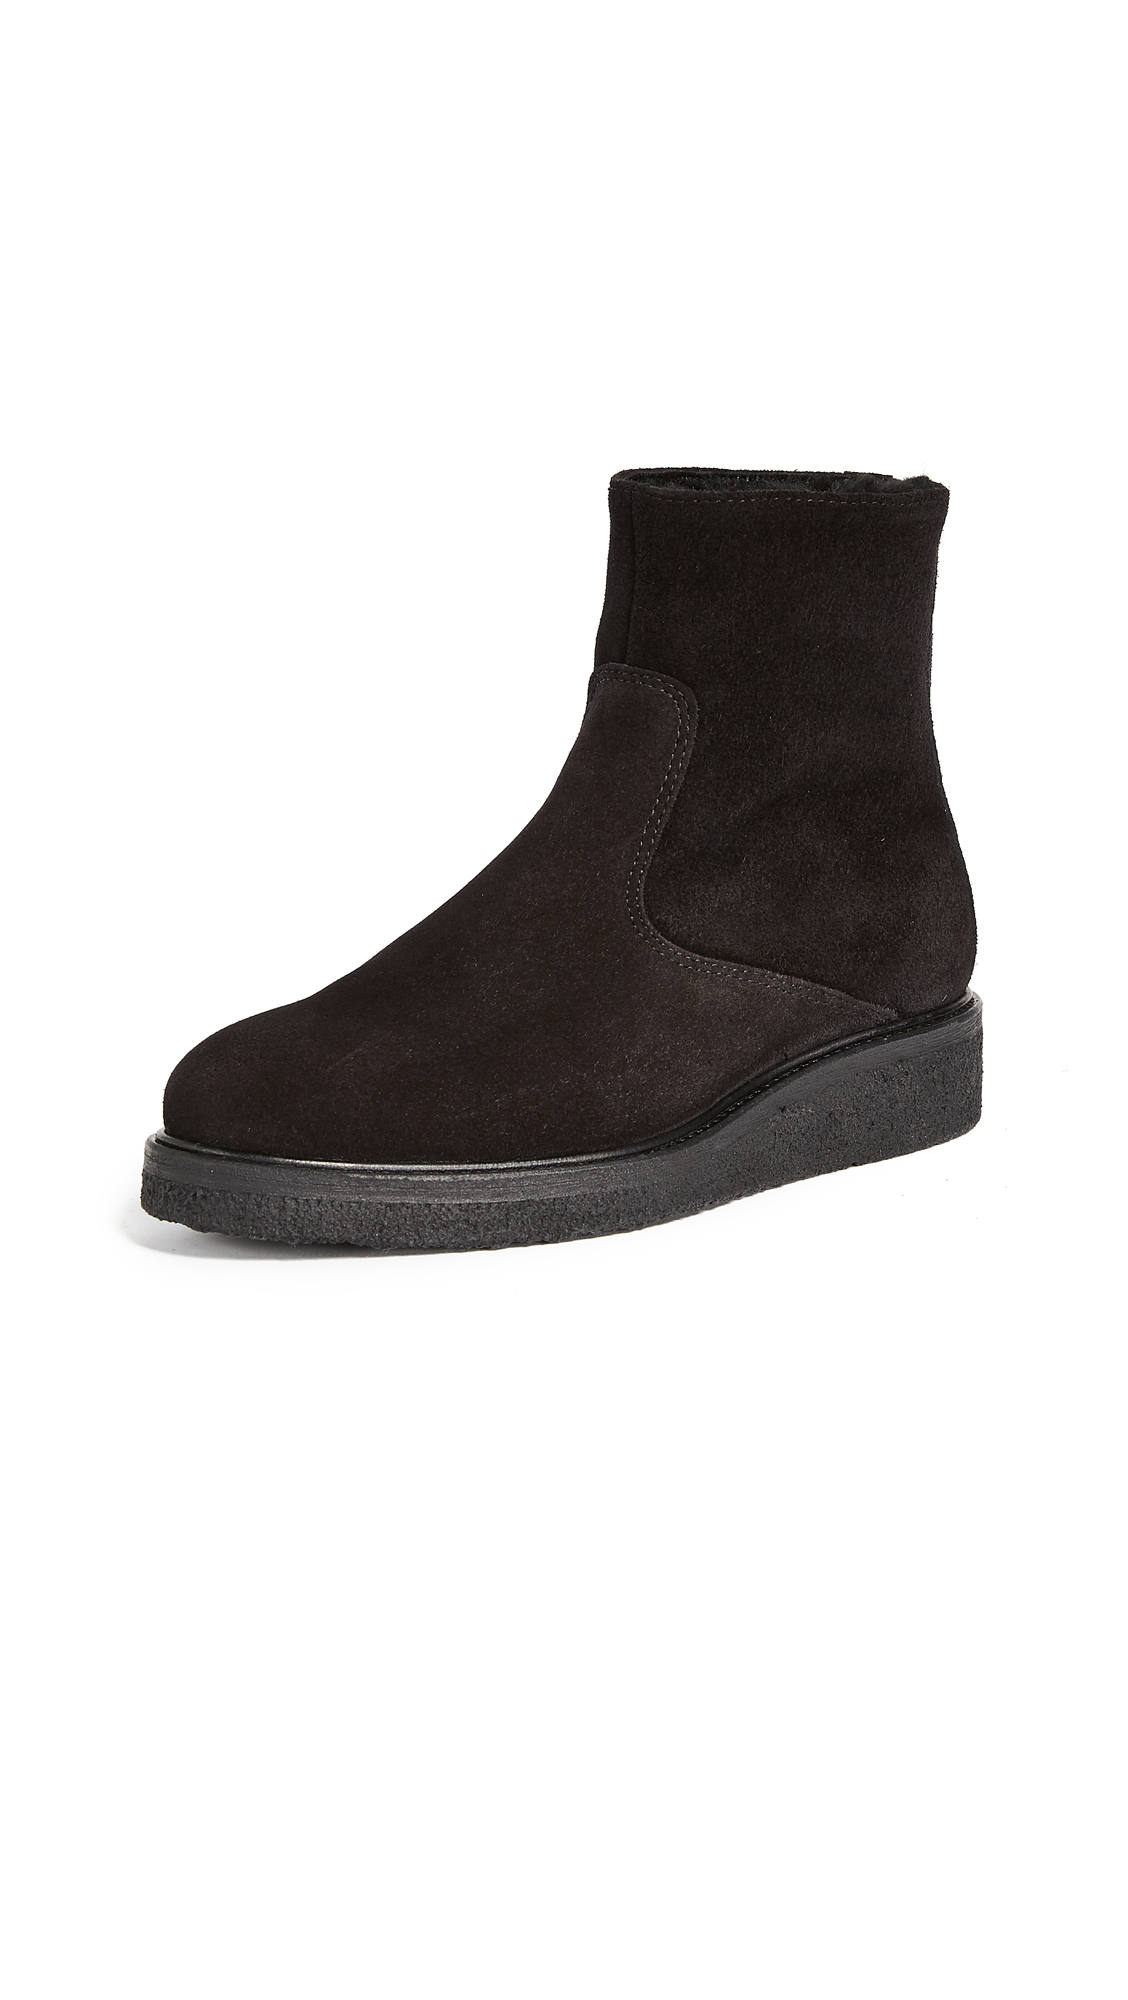 WANT LES ESSENTIELS Stevie Crepe Sole Ankle Booties - Black